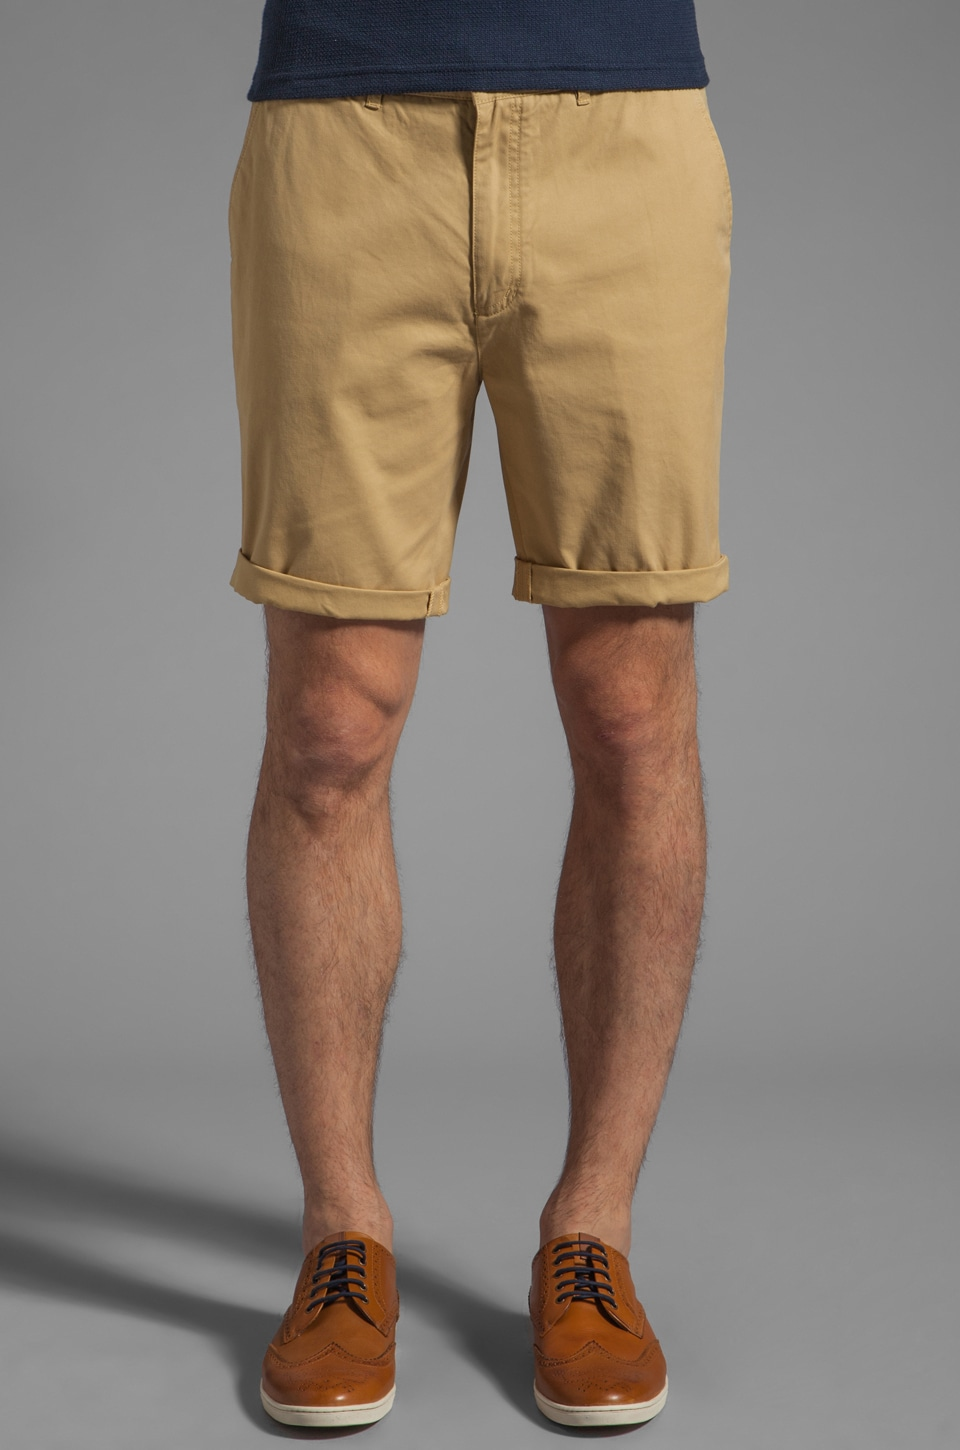 FARAH VINTAGE Chester Twill Short in Dust